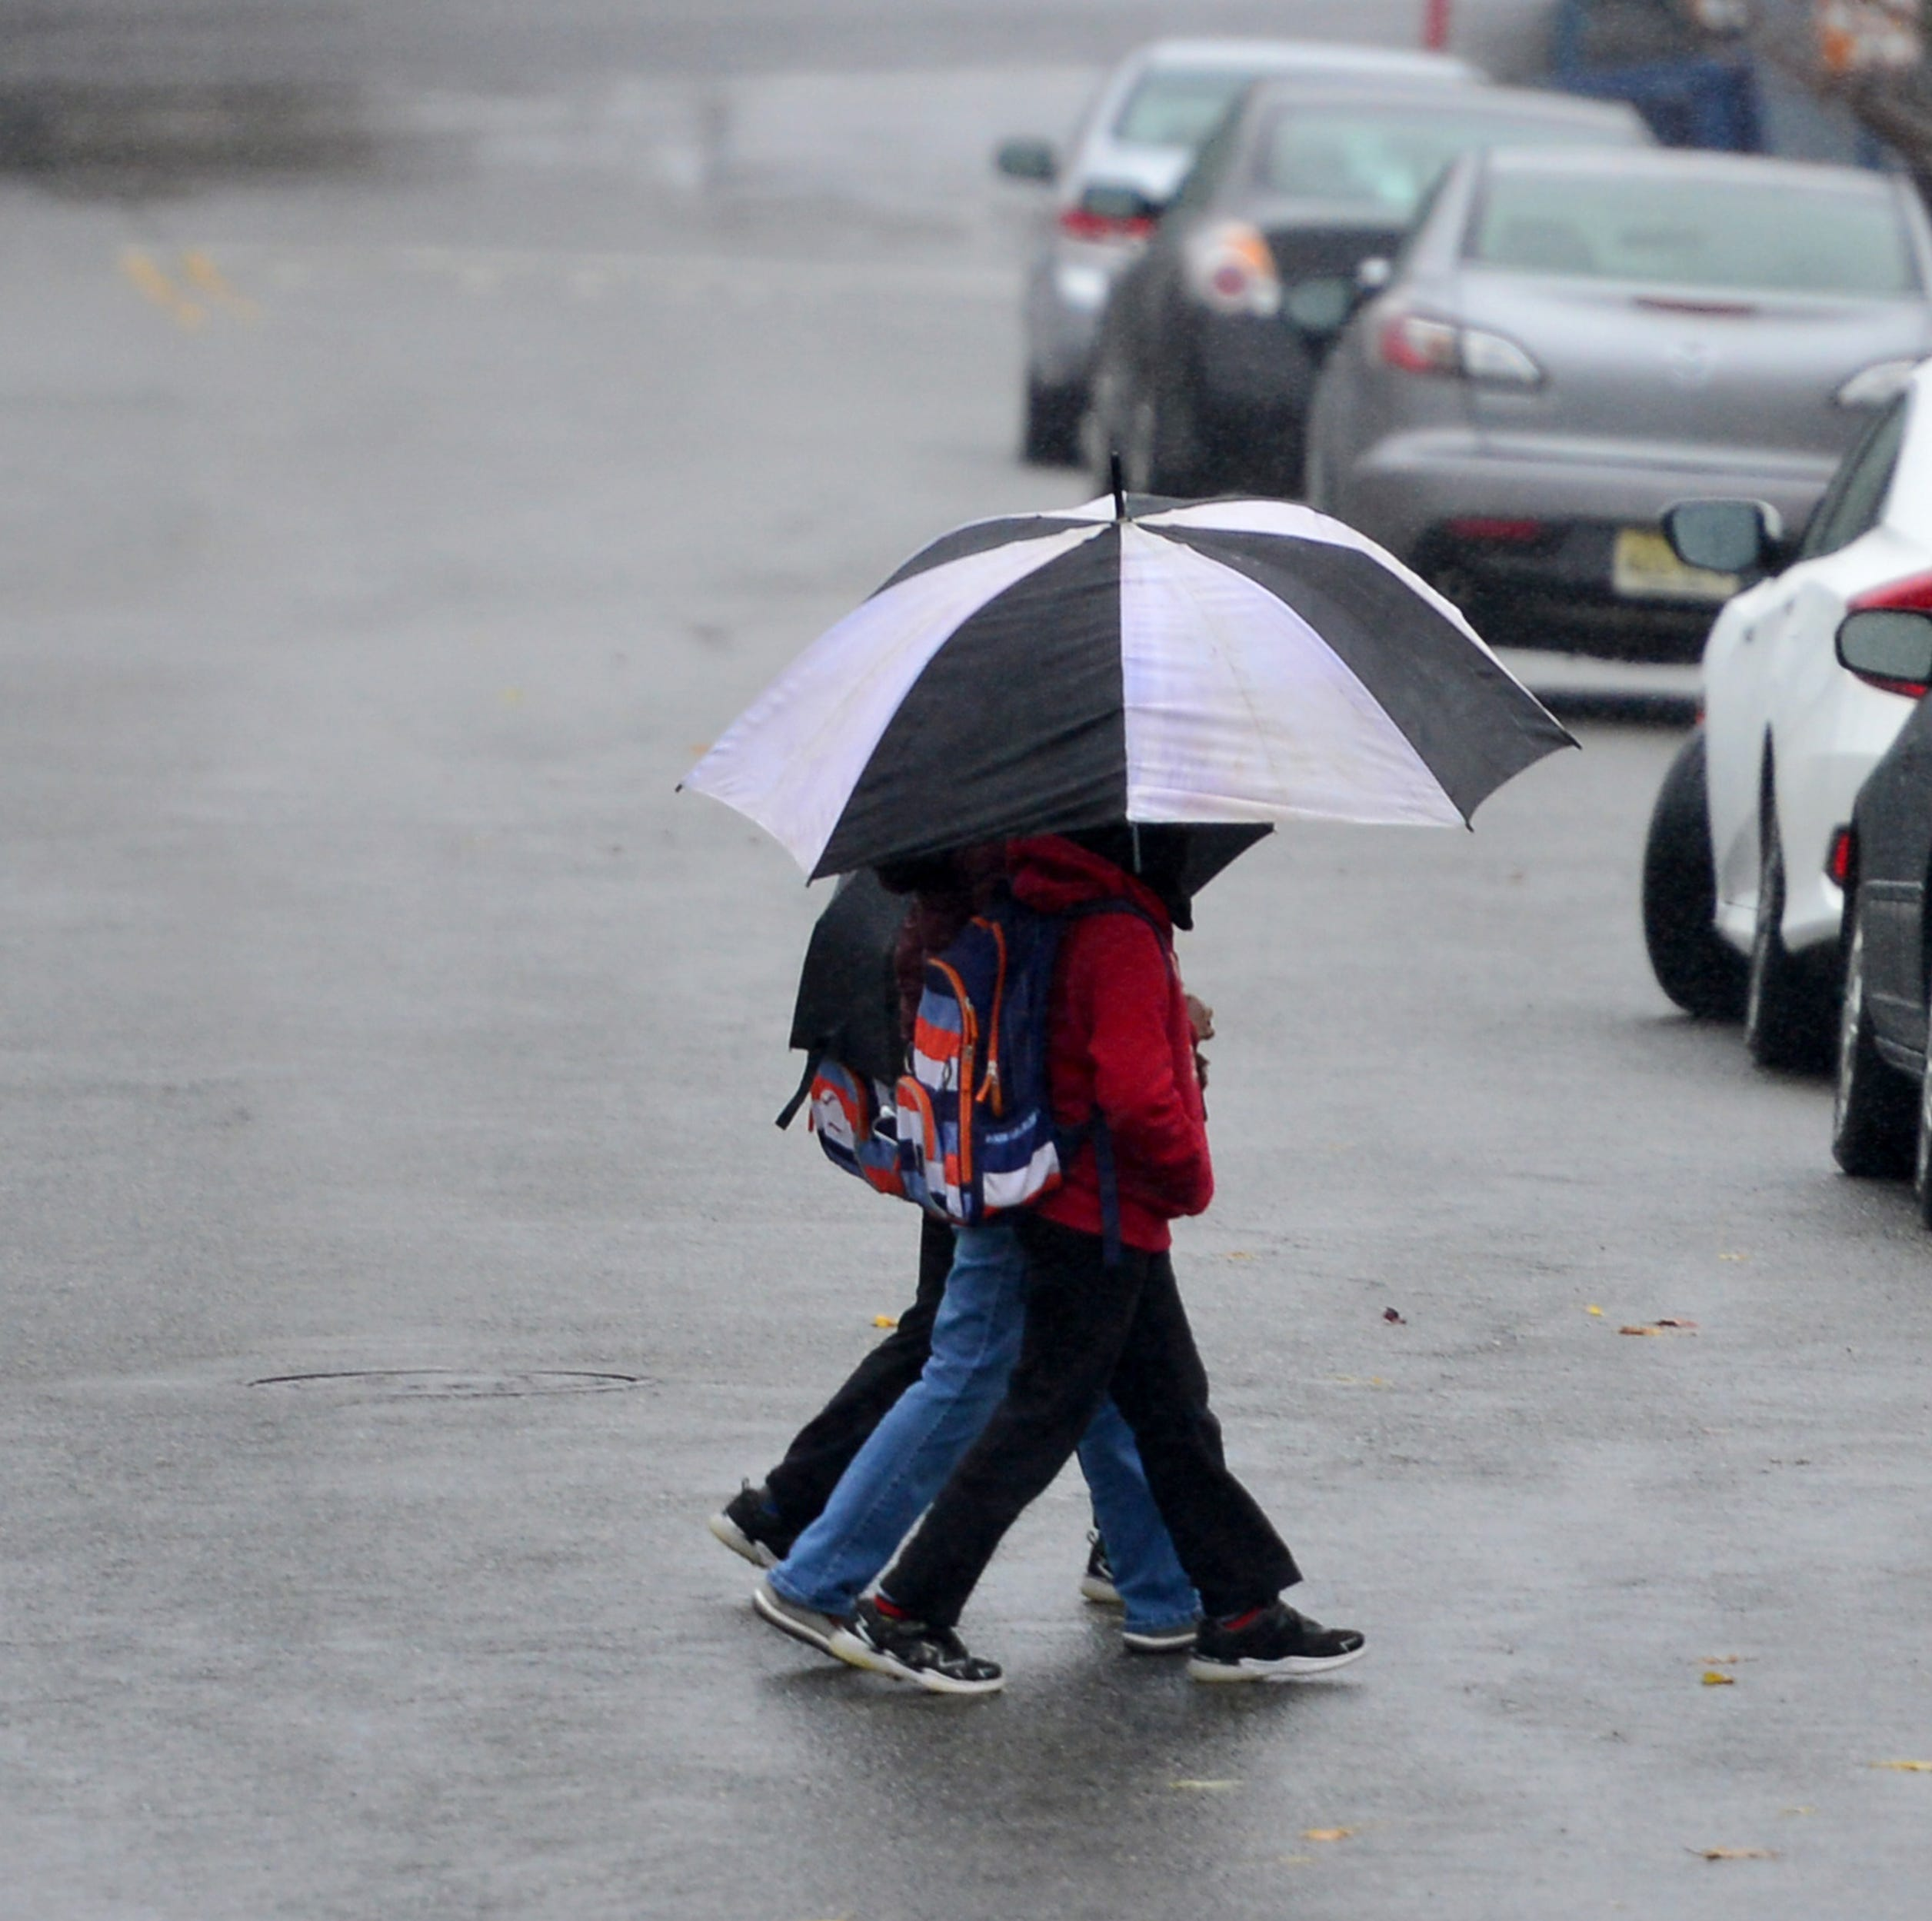 National Weather Service issues flash flood watch for North Jersey